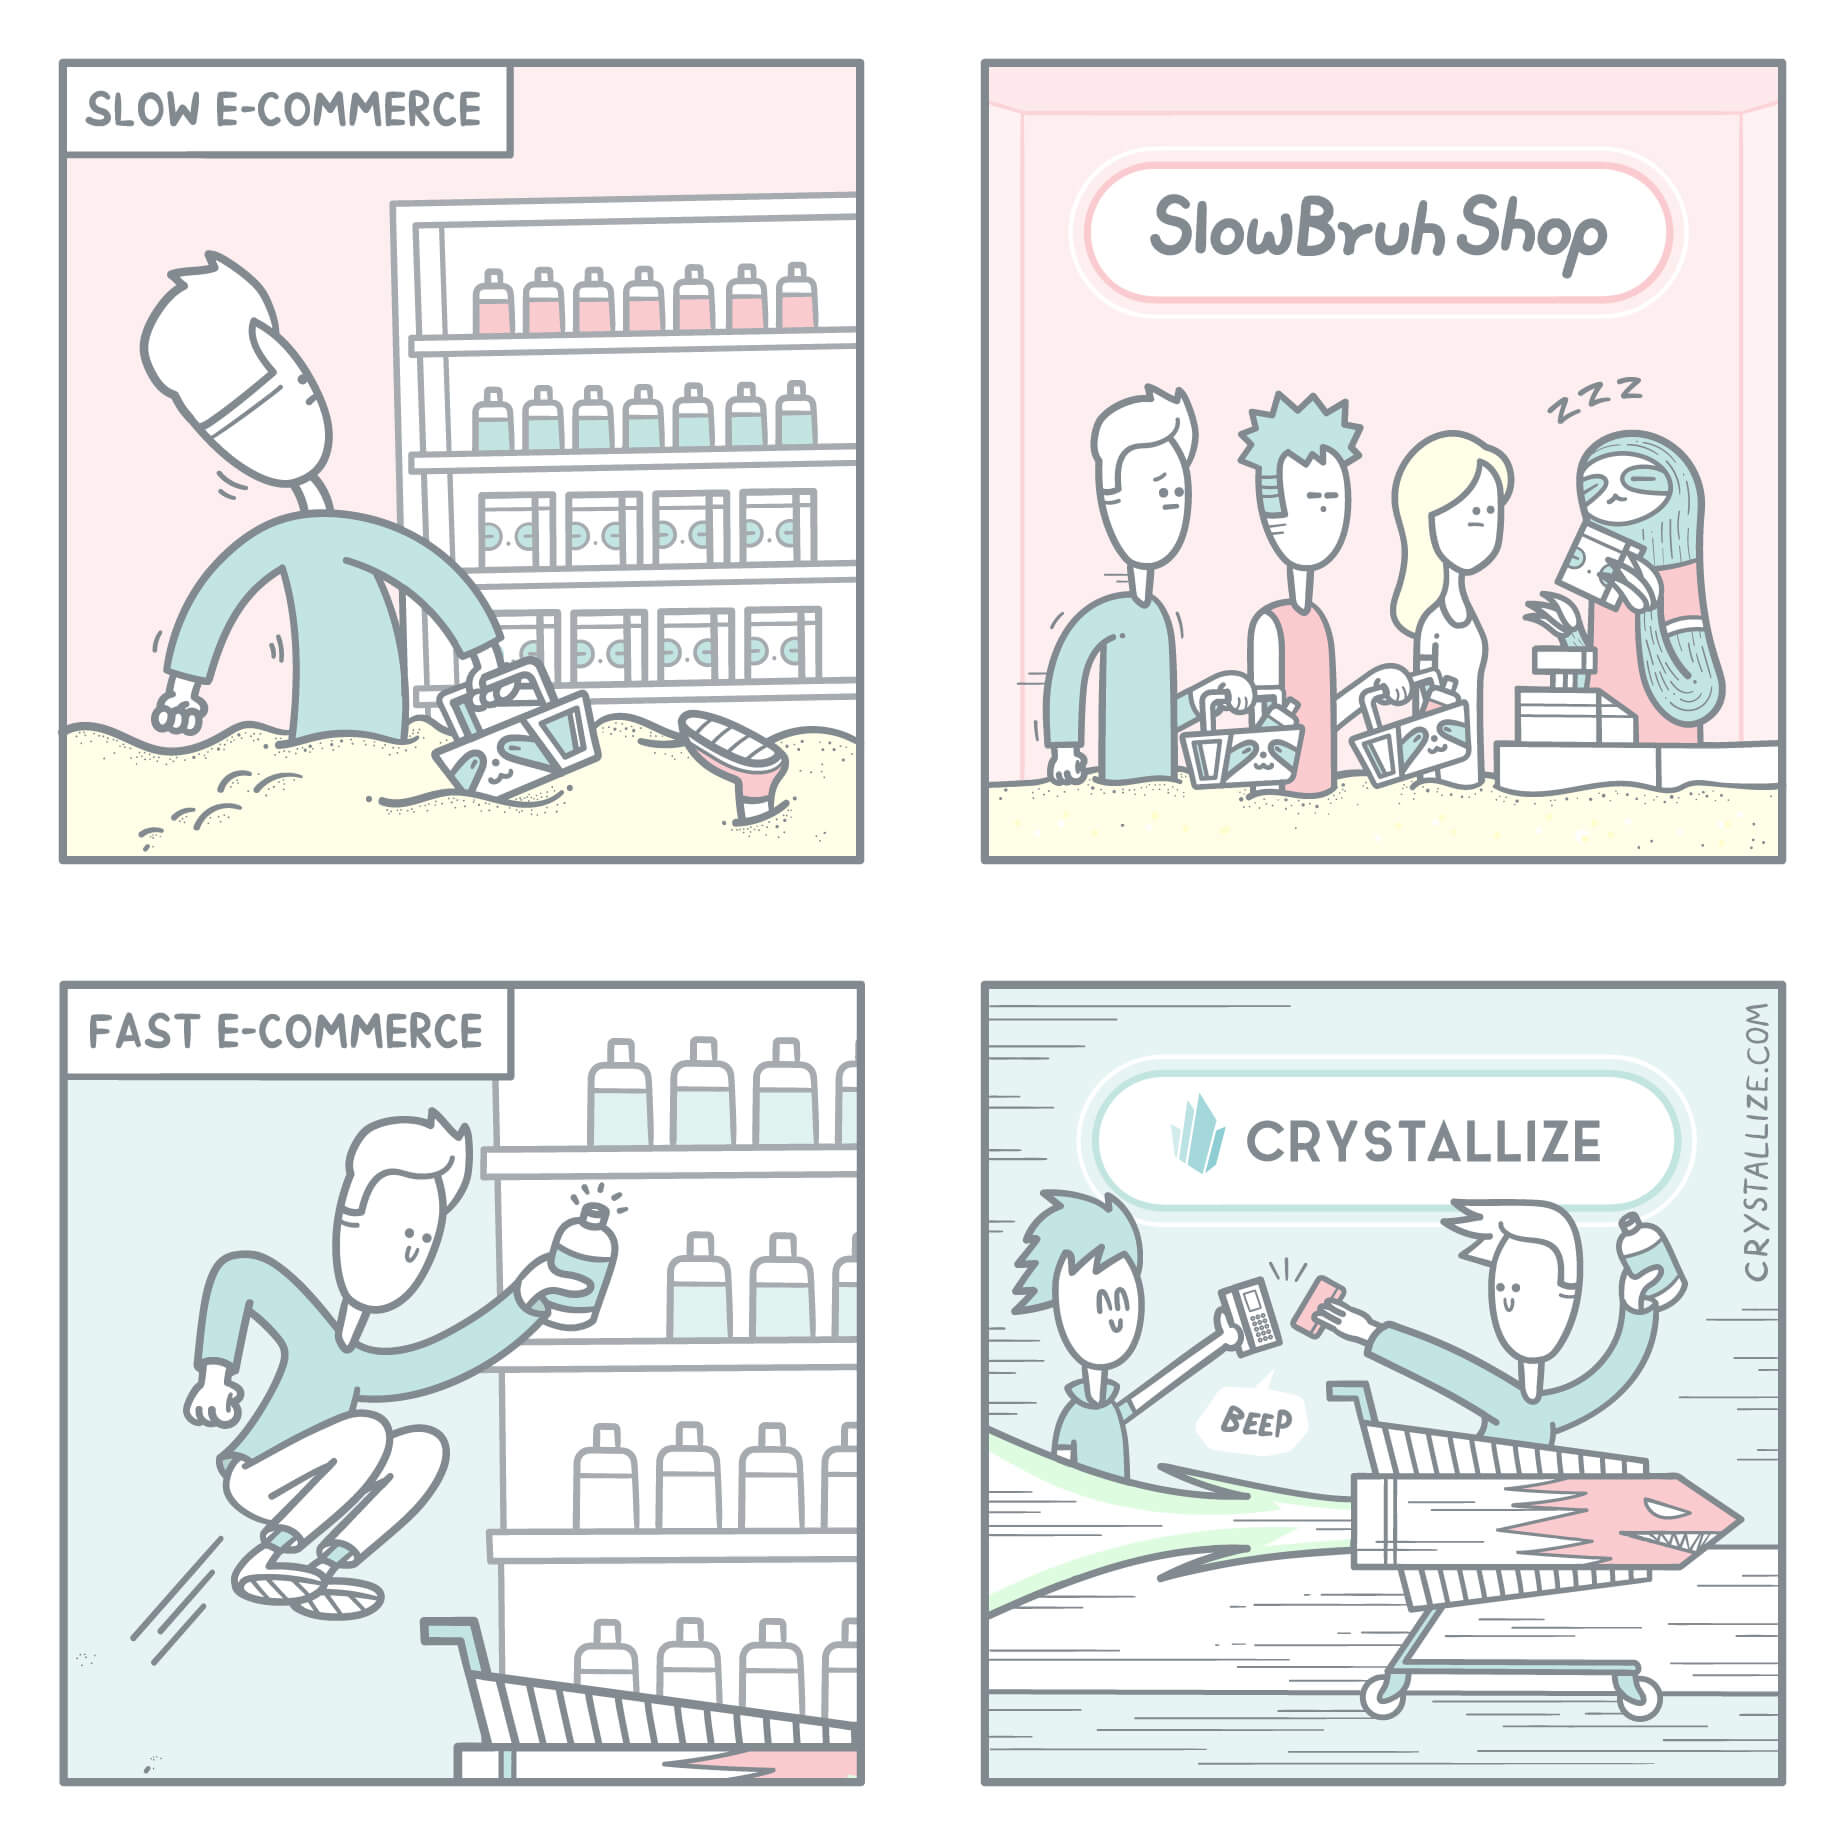 E-commerce: Slow vs Fast